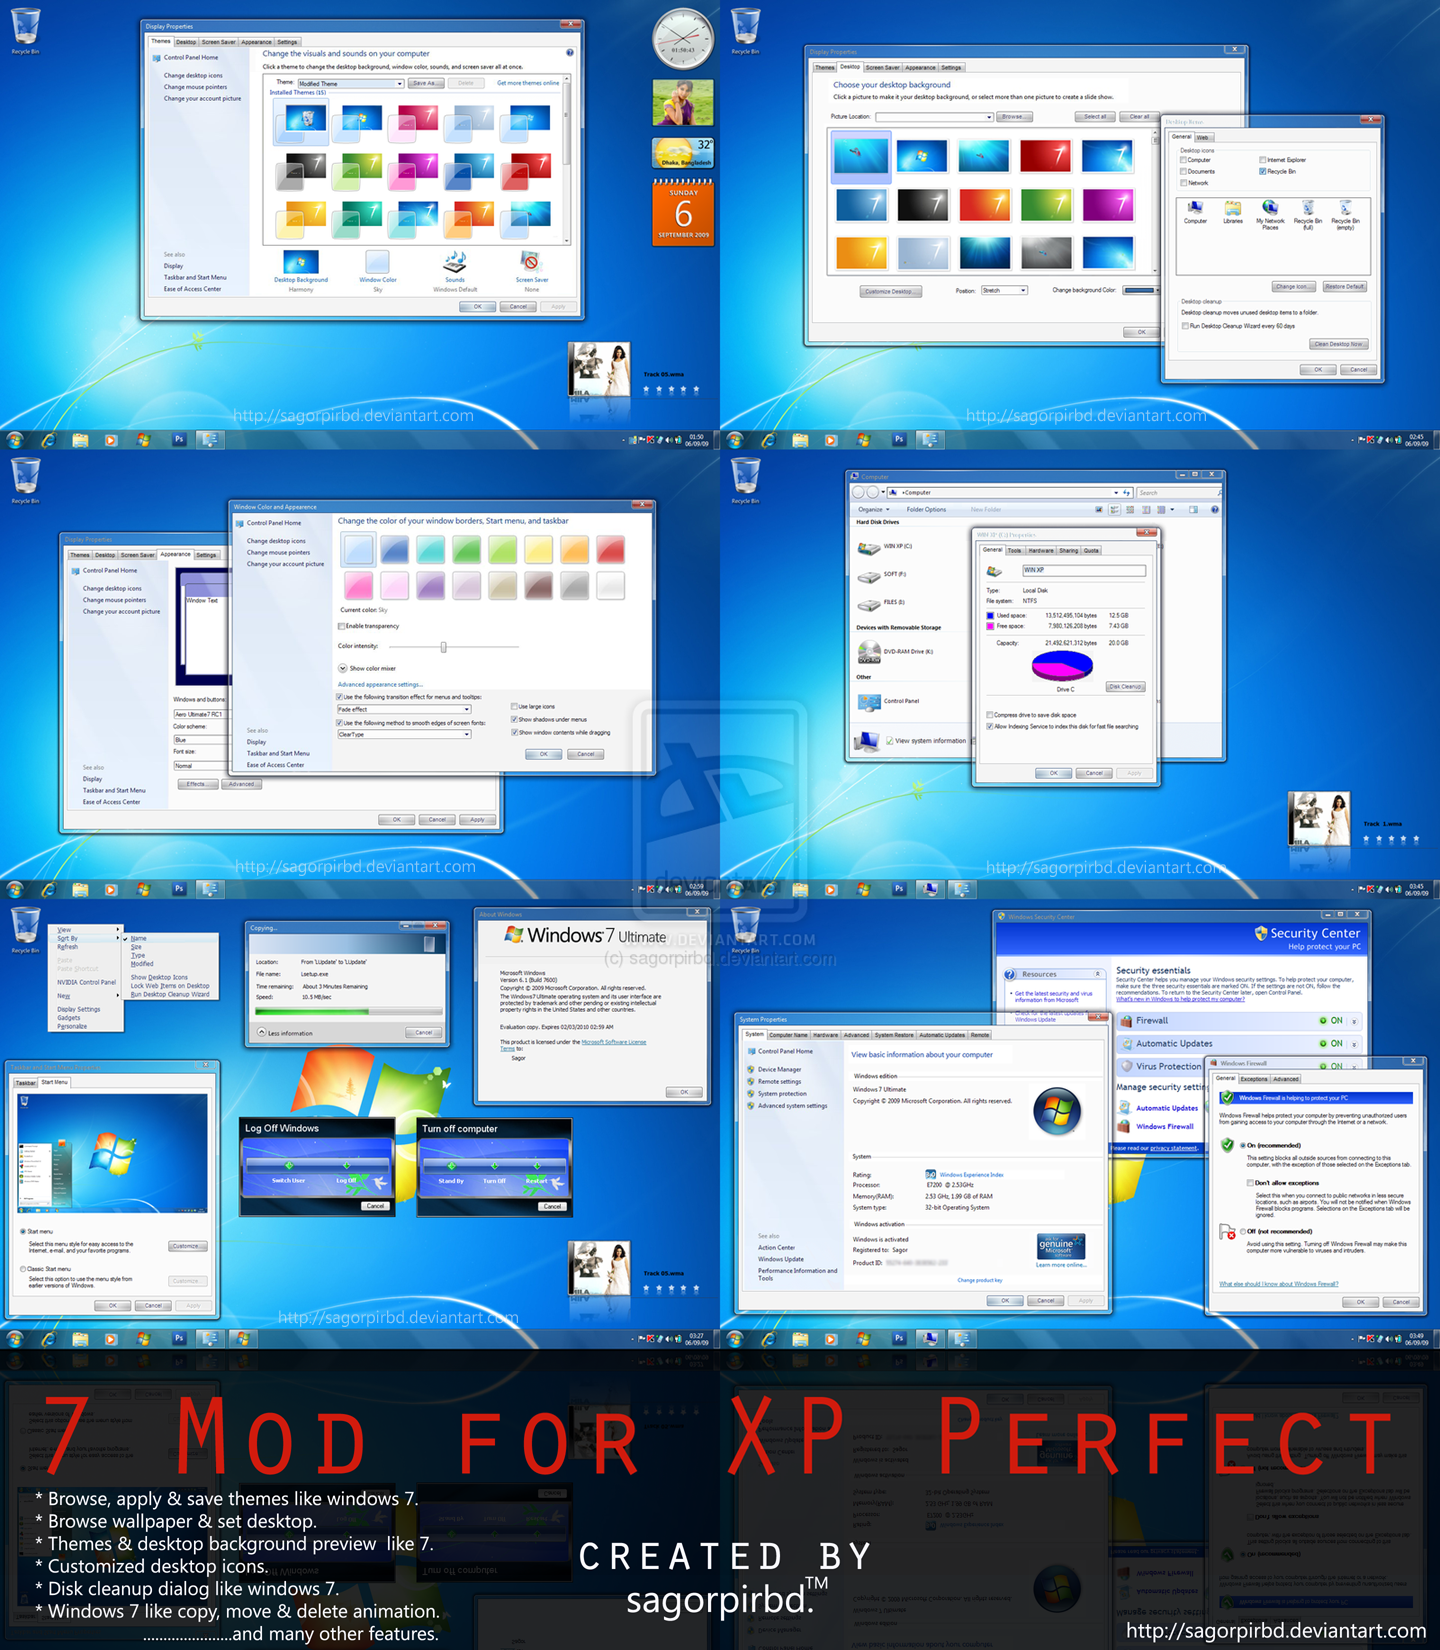 Windows 7 mod for xp perfect by sagorpirbd on deviantart for Windows windows windows